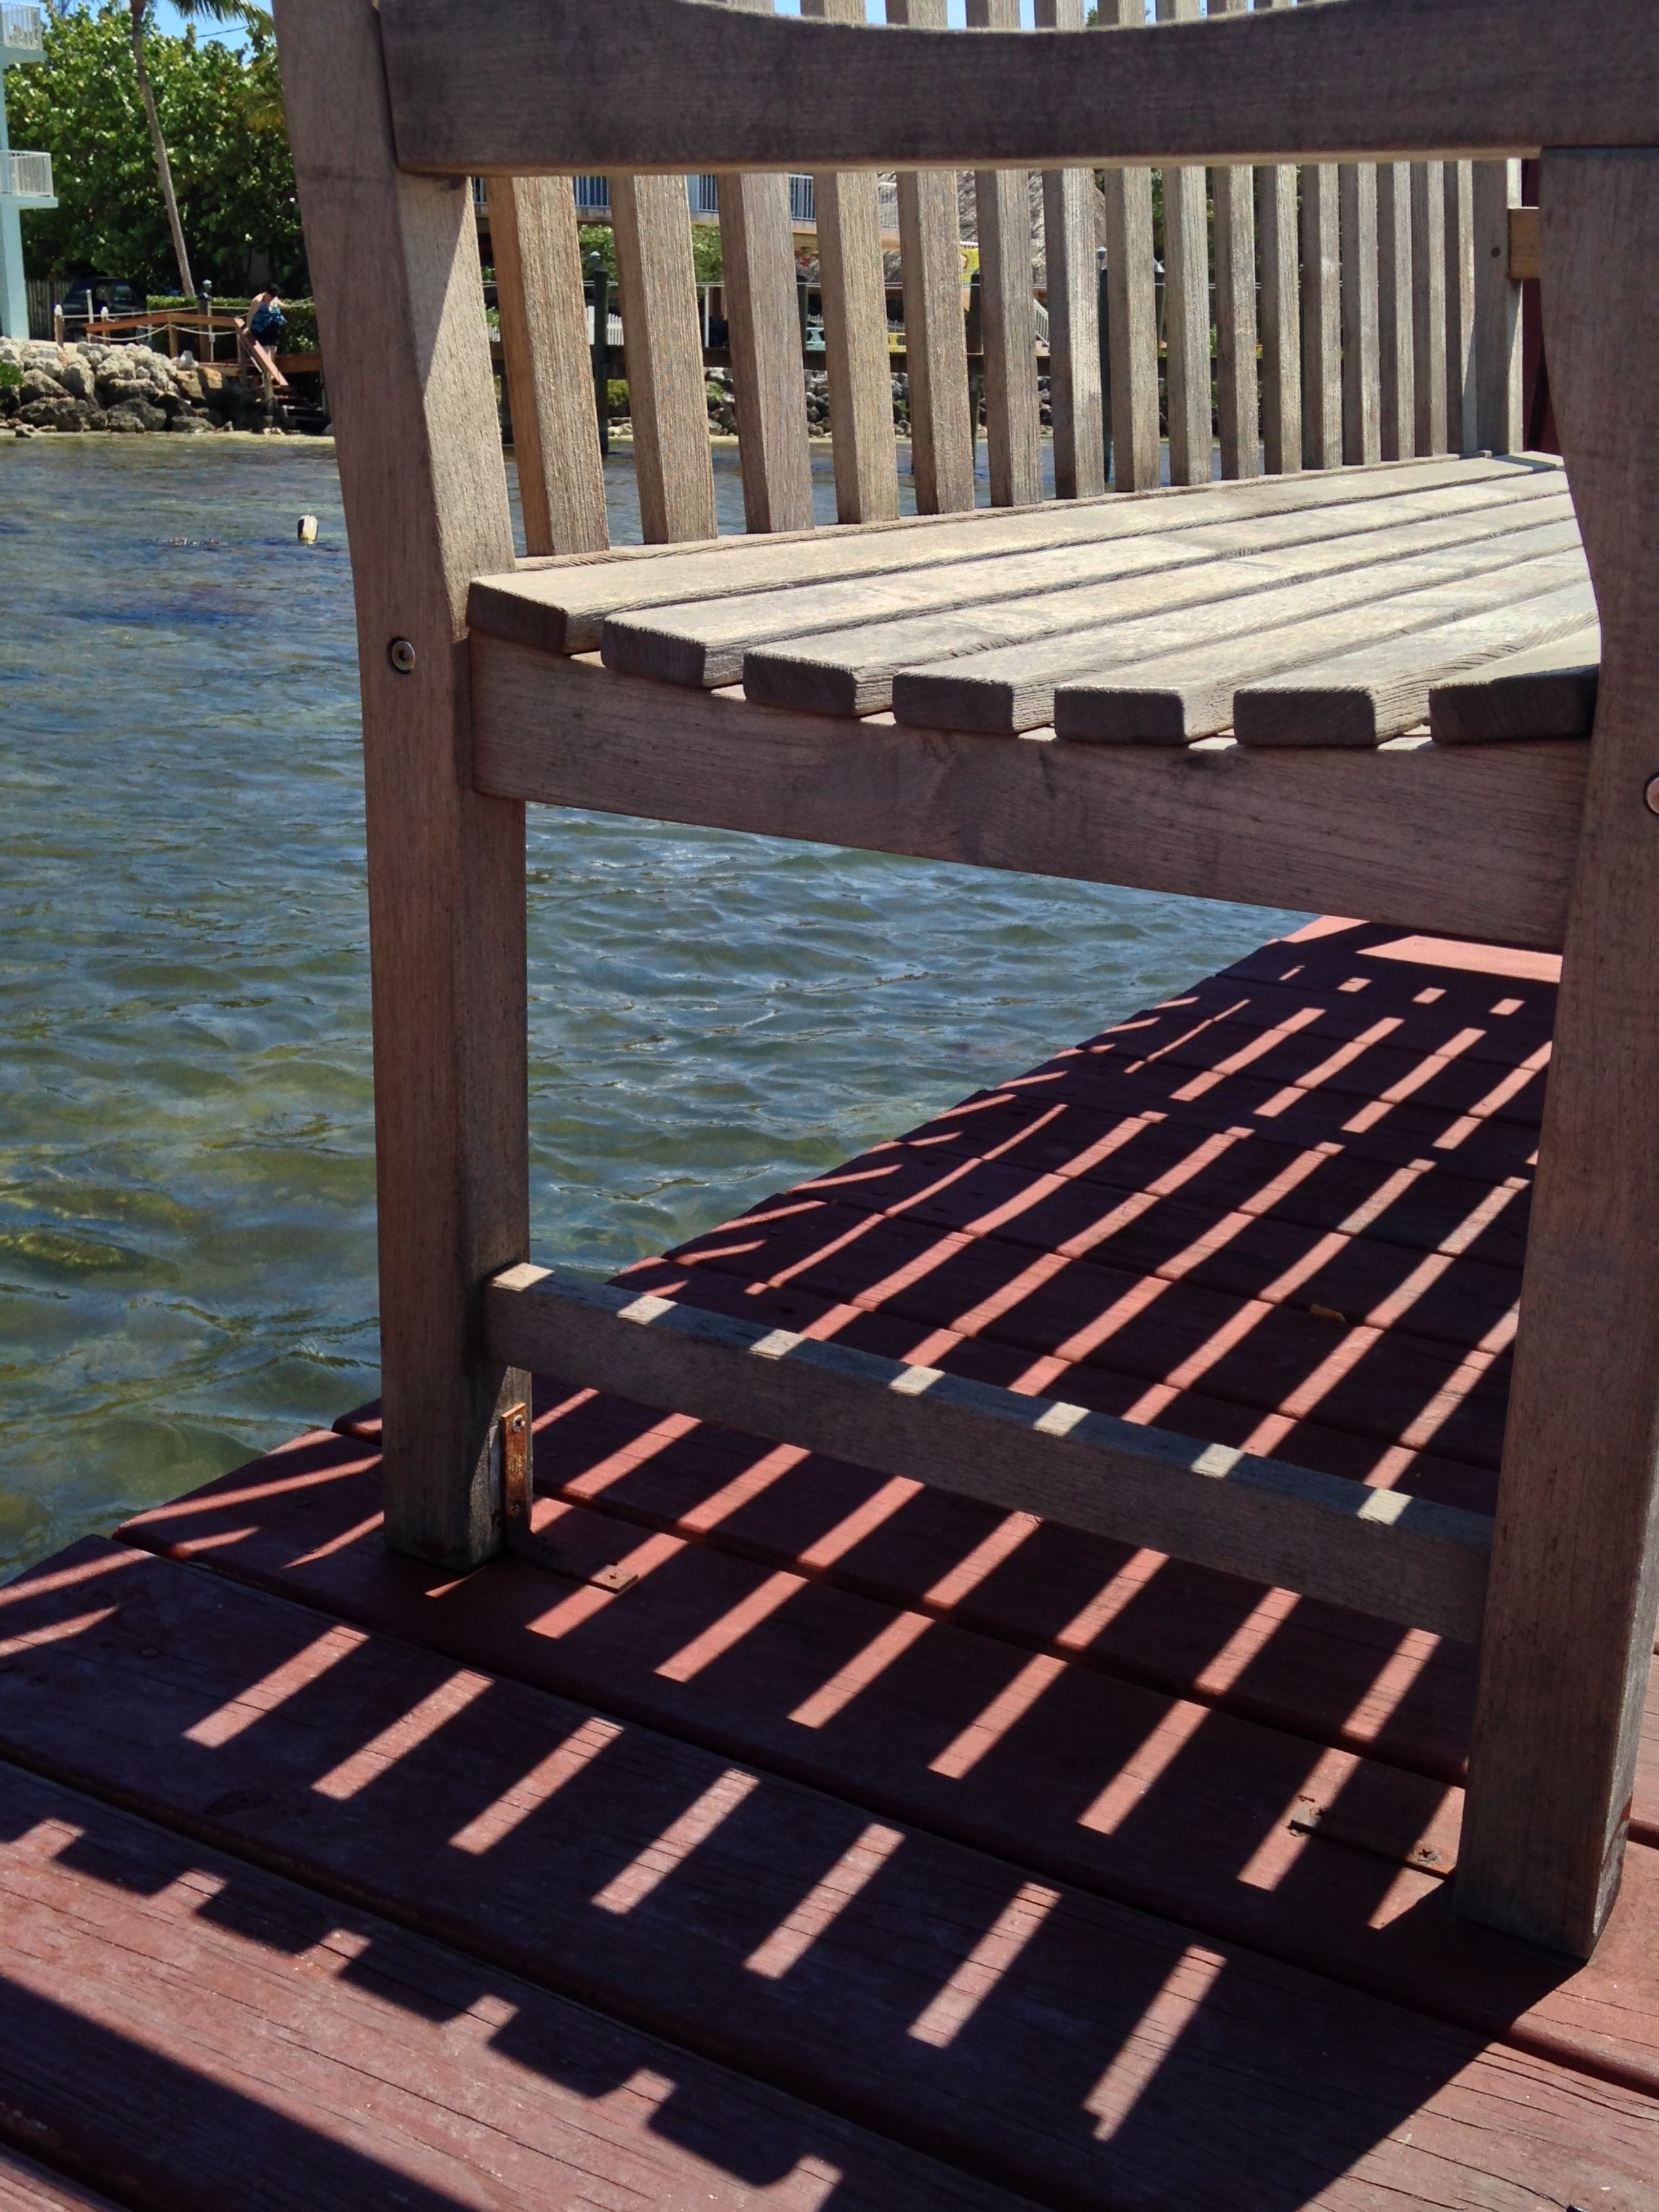 The Florida Keys, Benches, and Sunlight